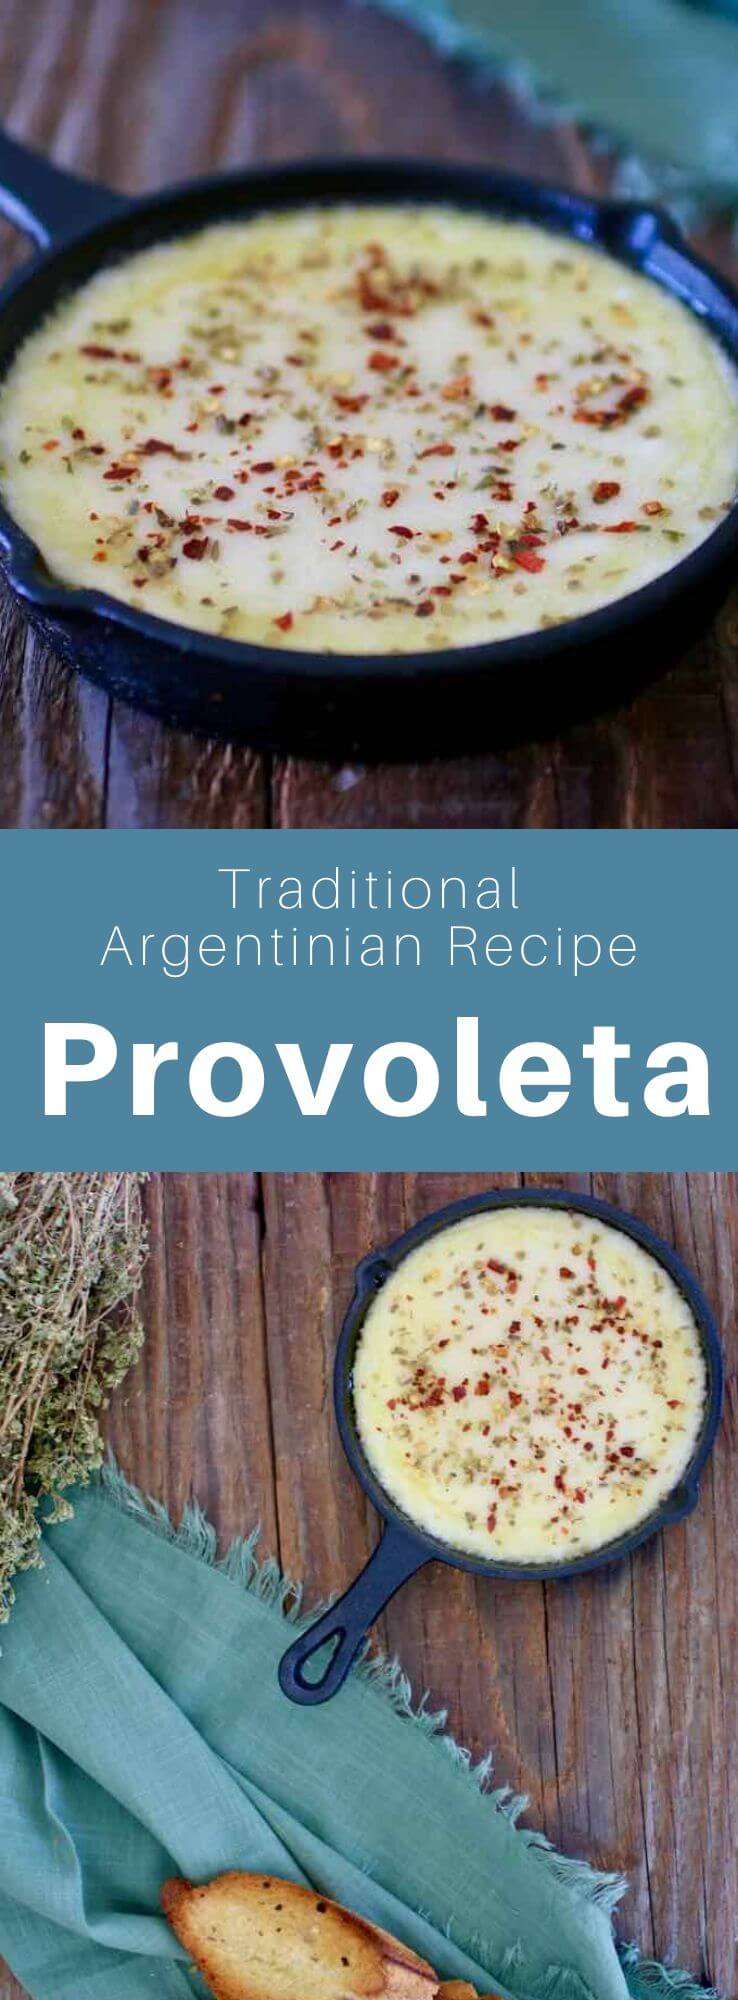 Provoleta is the popular grilled cheese of Argentinian asados. It is a version of the famous Italian provolone cheese. #Argentina #ArgentinianRecipe #ArgentinianFood #ArgentinianCuisine #WorldCuisine #196flavors